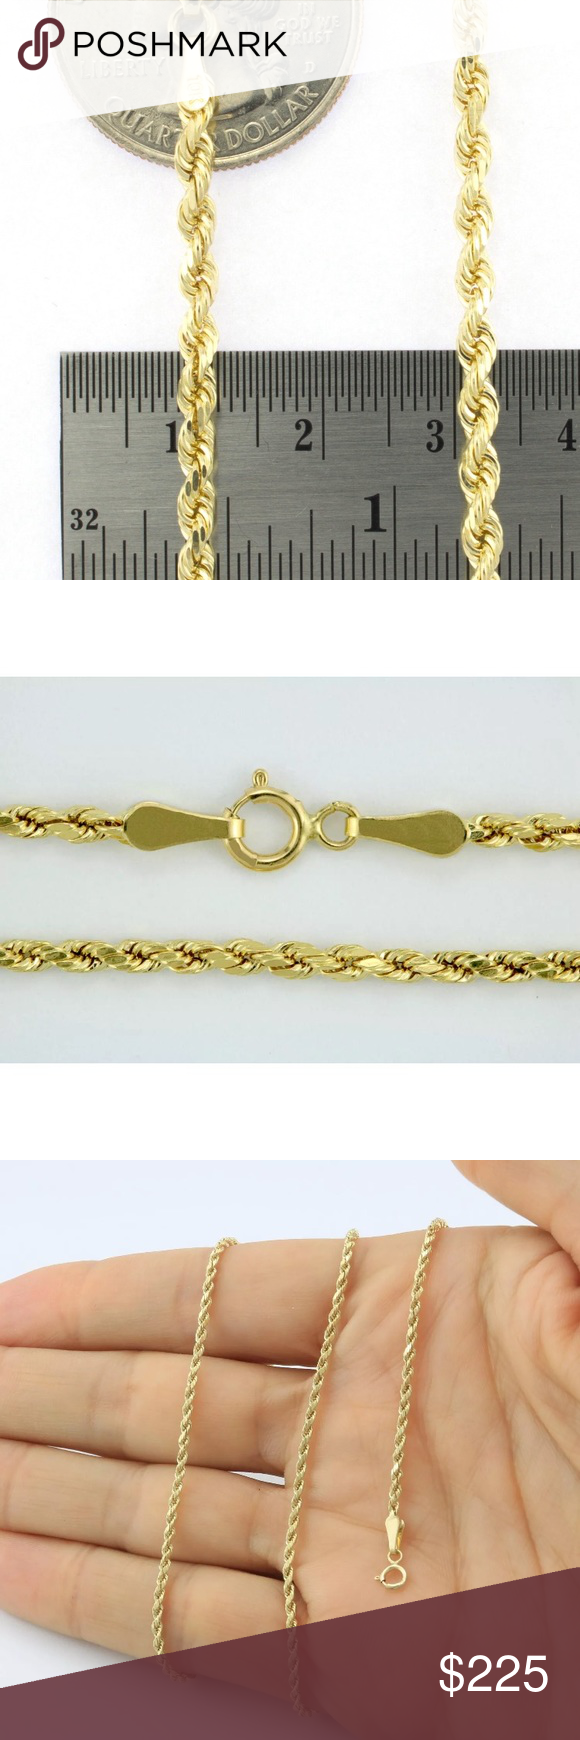 New Solid Gold Rope Chain 20 10k Gold Necklace Gold Rope Chains Gold Necklace 10k Gold